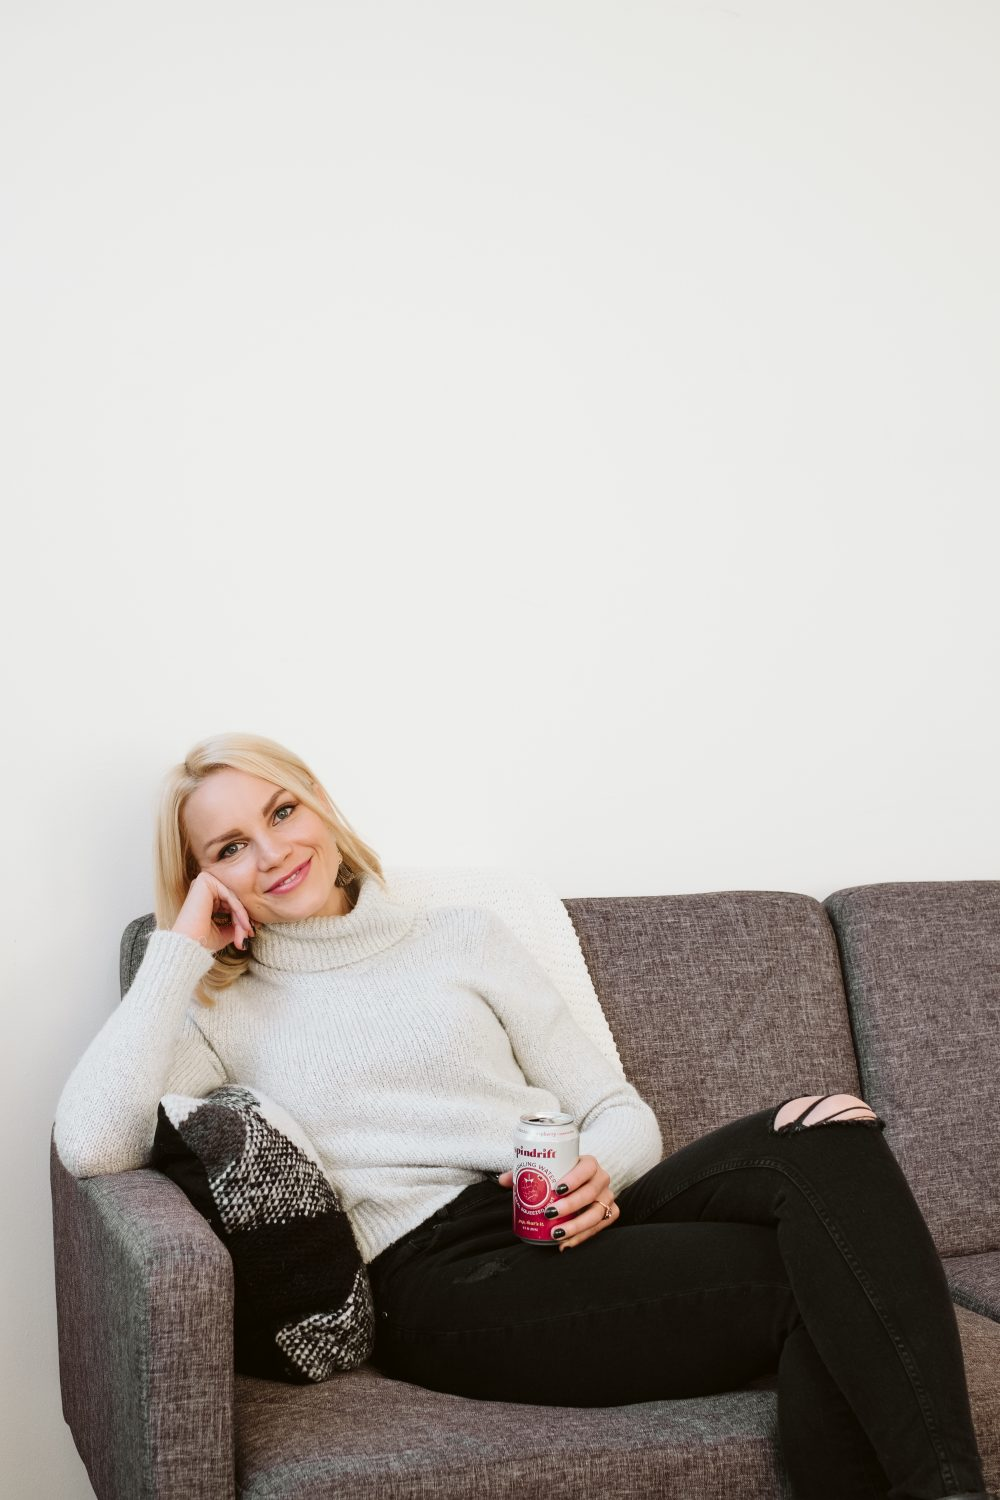 blonde woman sitting on a couch with a can of spindrift sparkling water